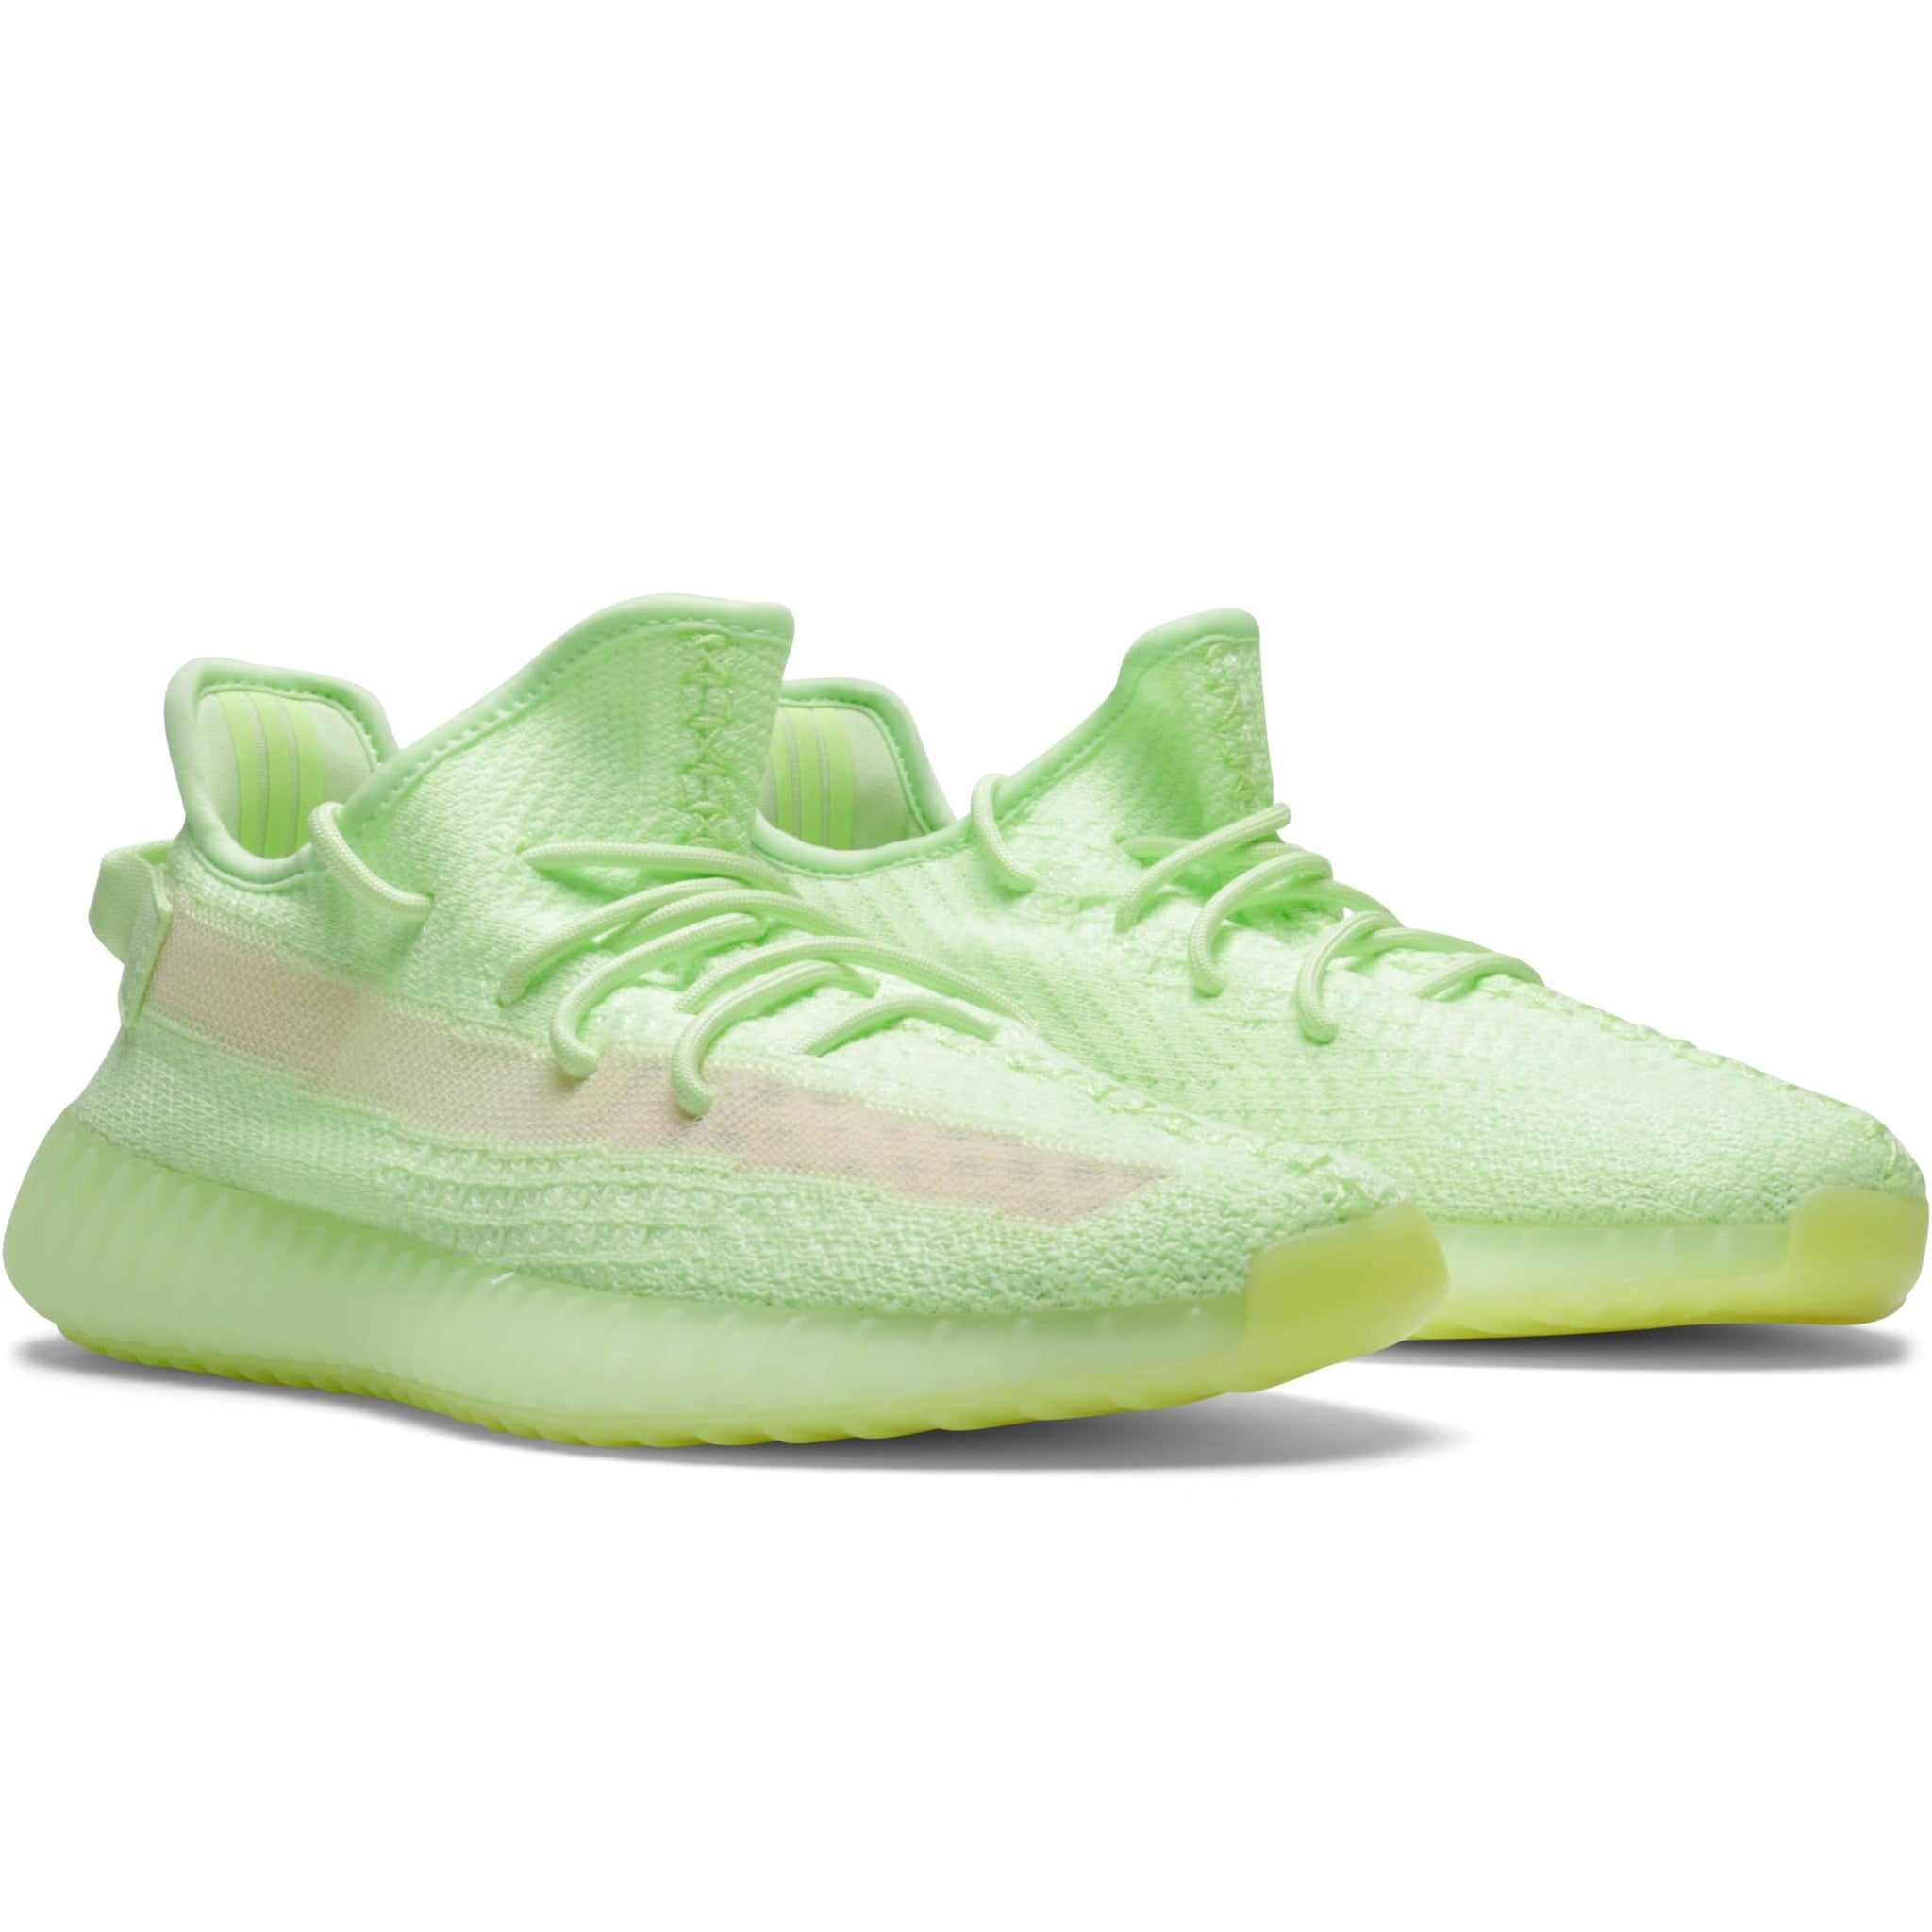 adidas yeezy boost 350 v2 gid glow Adidas YEEZY BOOST 350 V2 Glow in the Dark